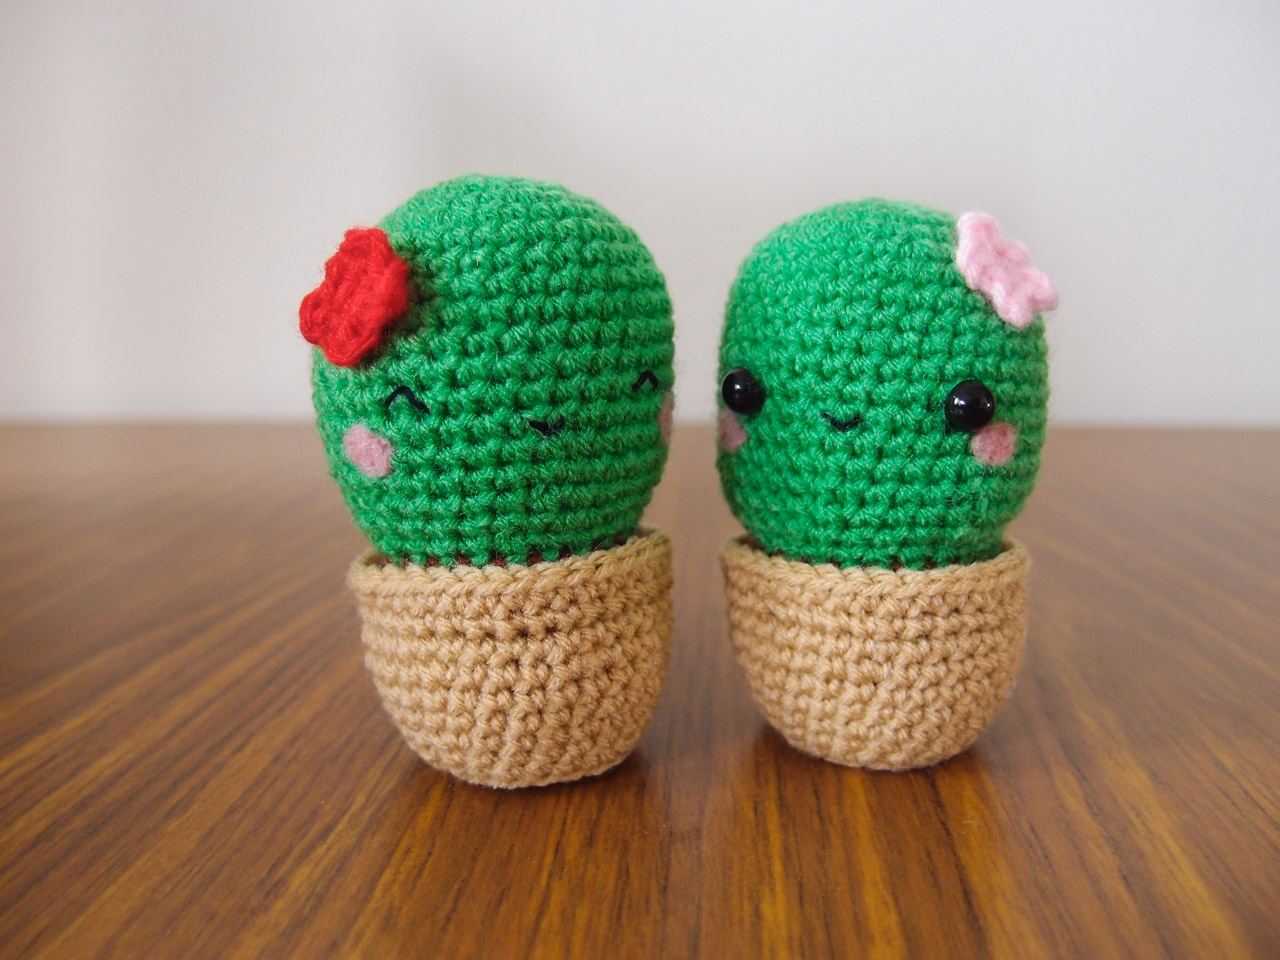 Amigurumi Cactus Pattern : Cactus Amigurumis for Friends ~ Snacksies Handicraft Corner